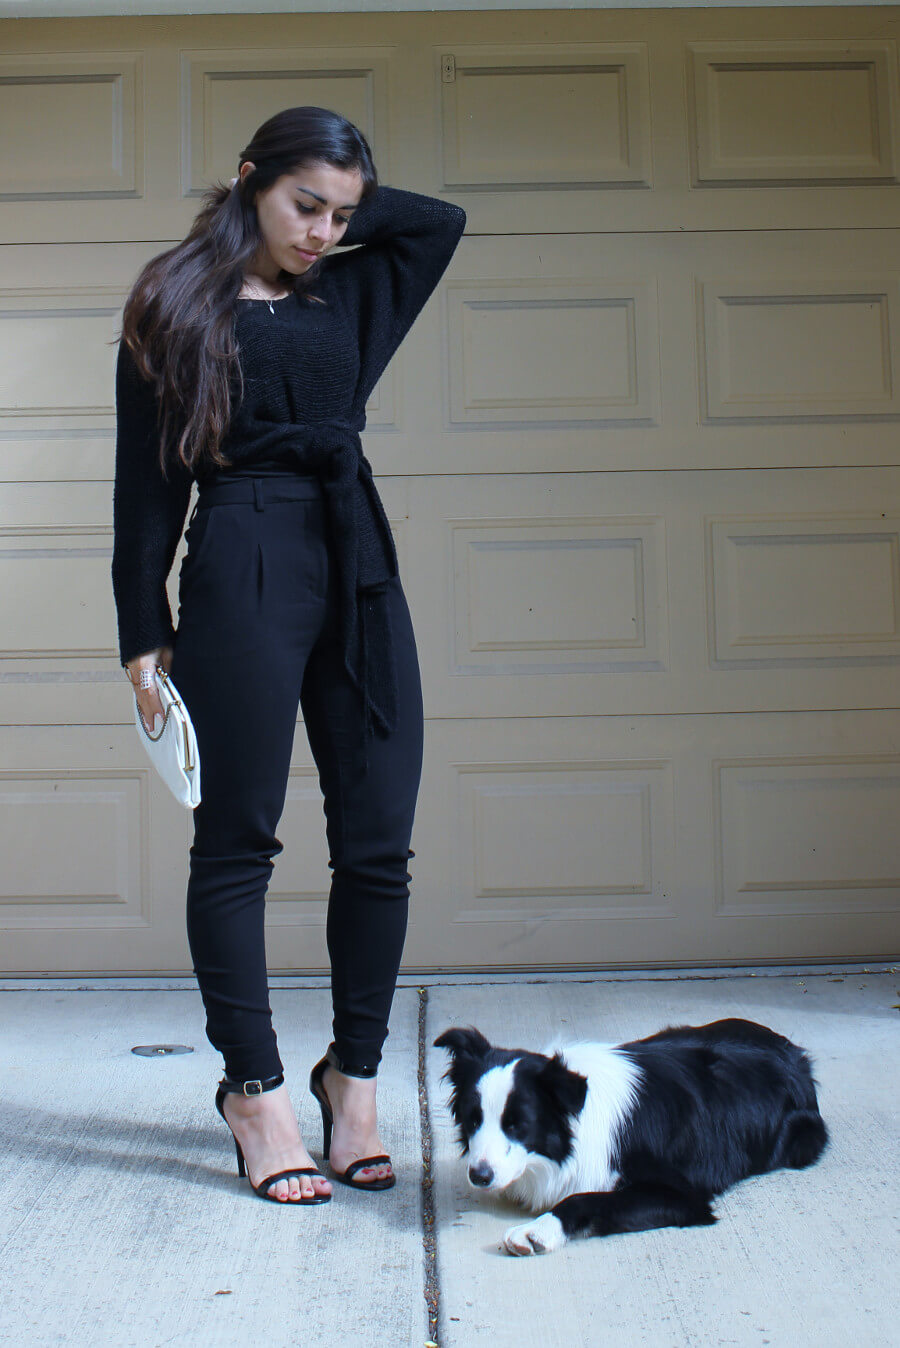 Slow Fashion Photo of the Week | High-waisted pants, vintage top with a knot, vintage clutch, black vegan ankle strap sandals, border collie puppy | Fashionhedge